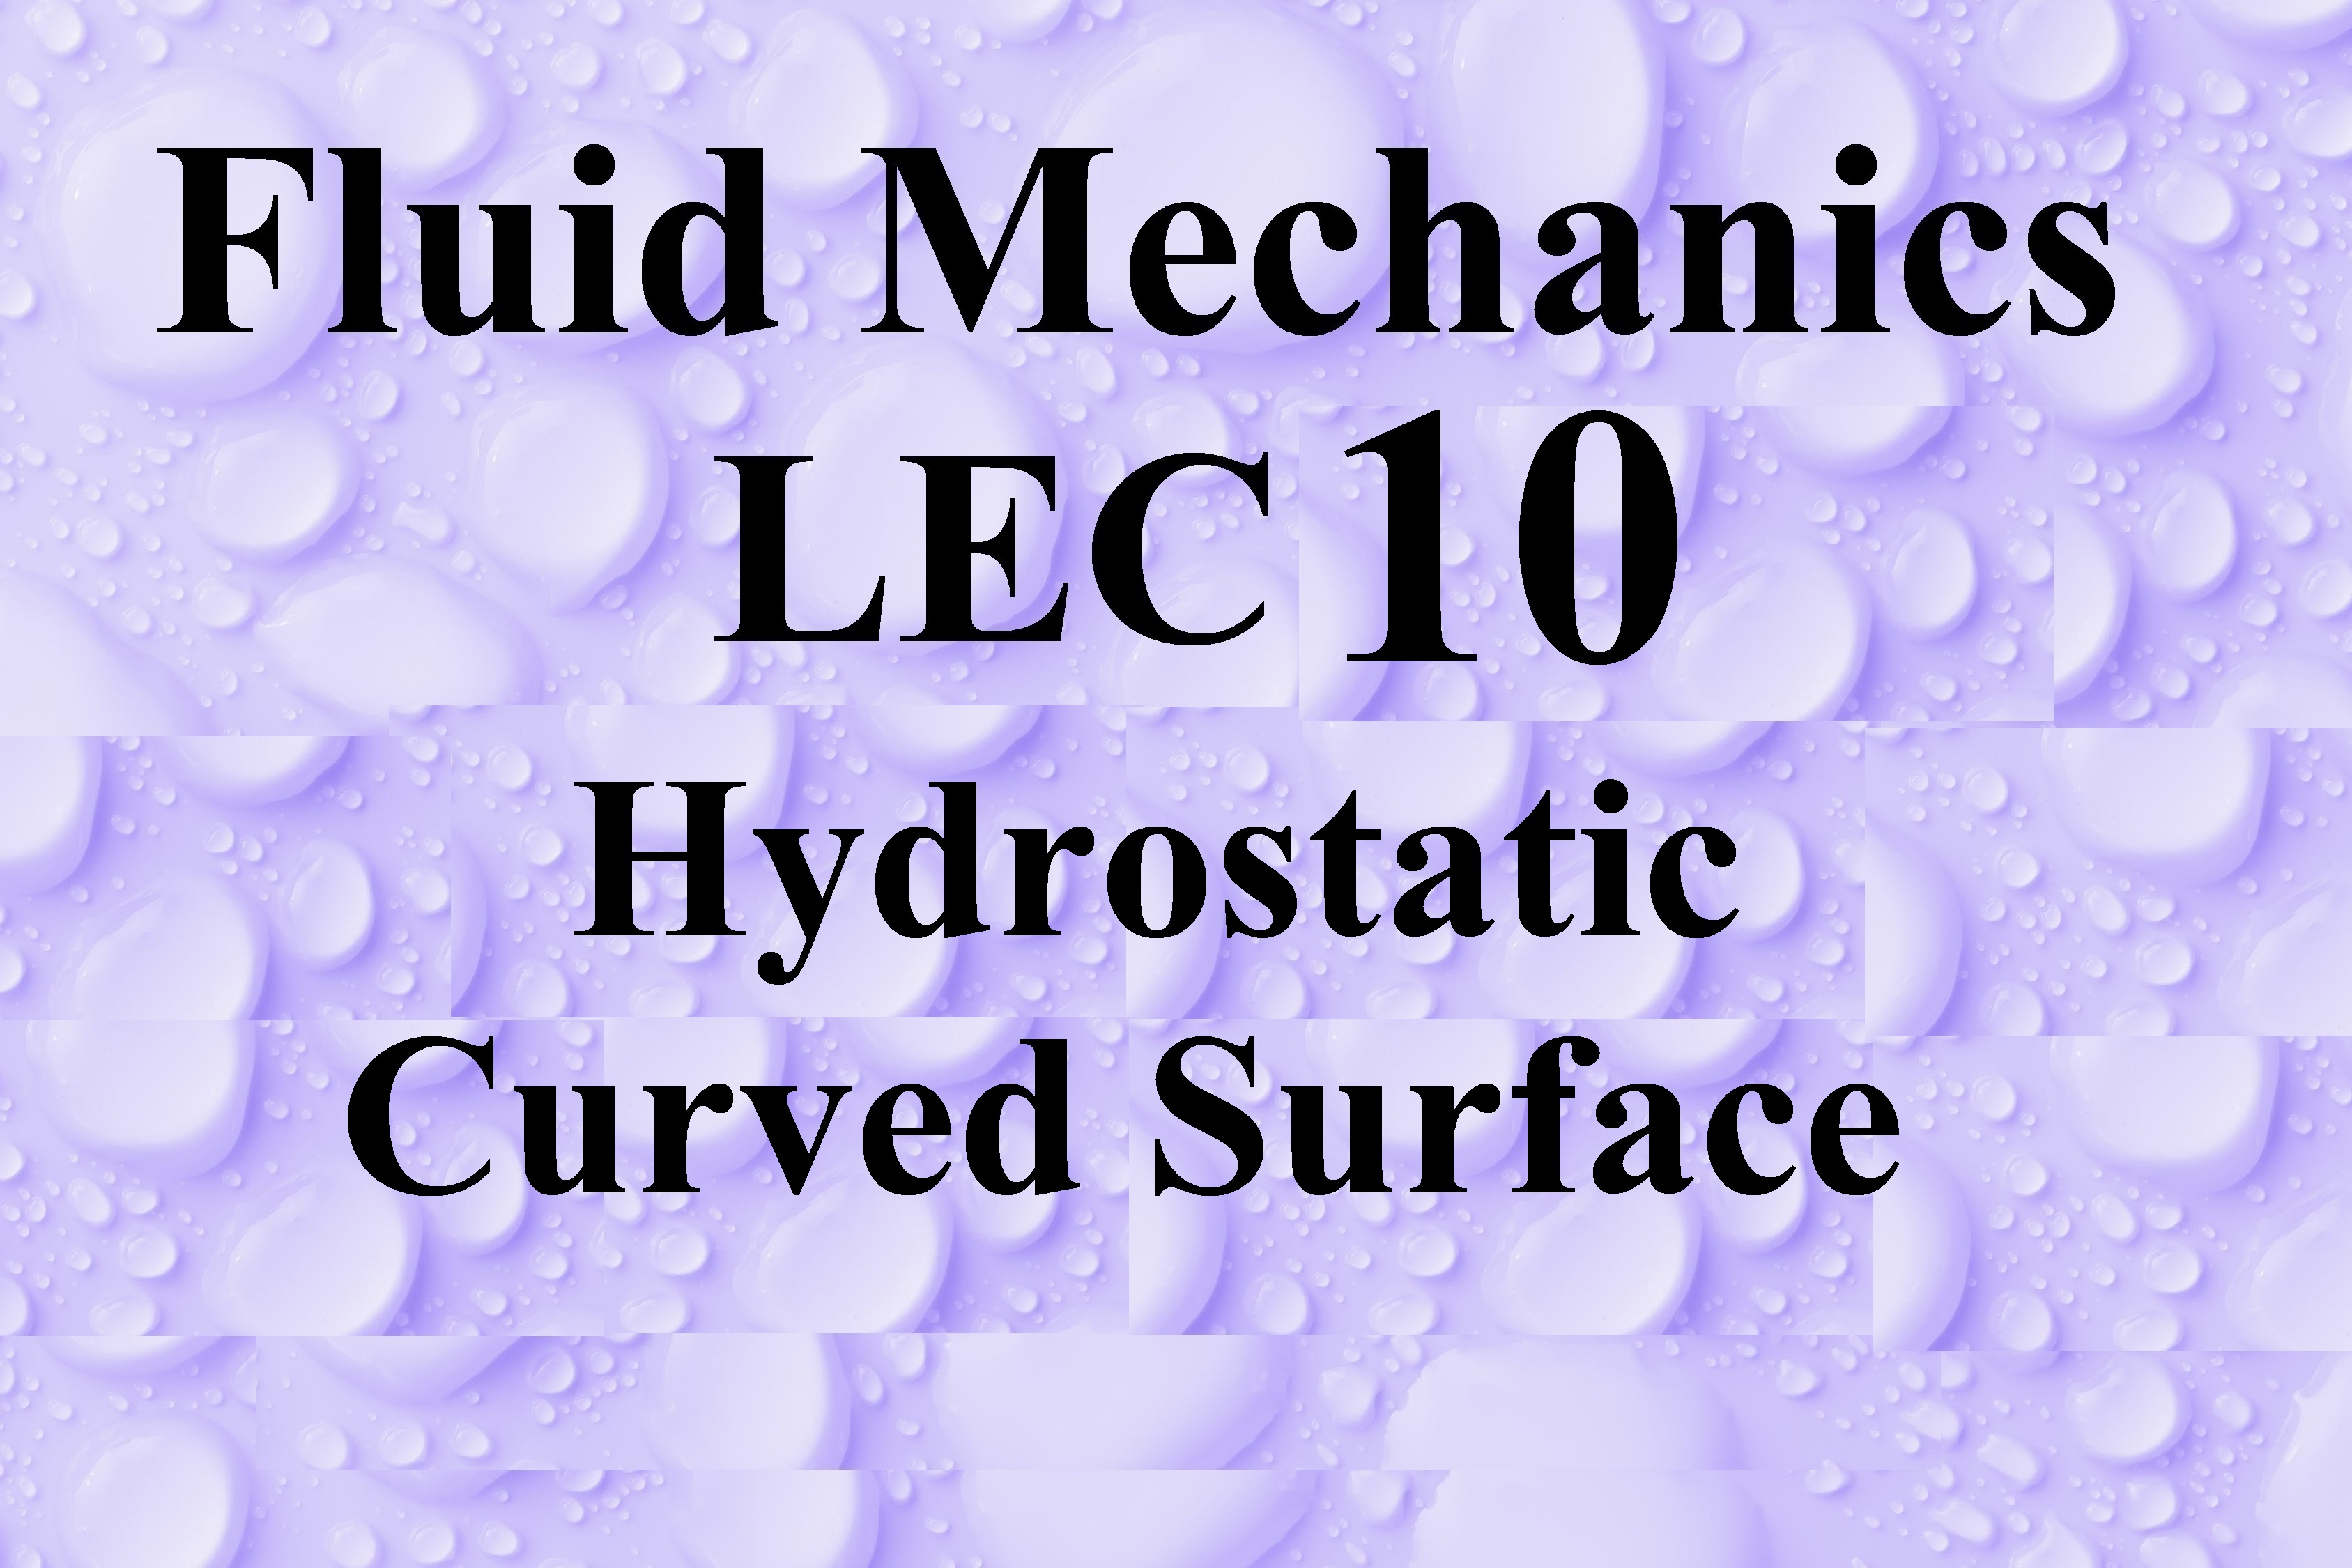 Lec 10 Hydrostatic Forces (Curved Surface)